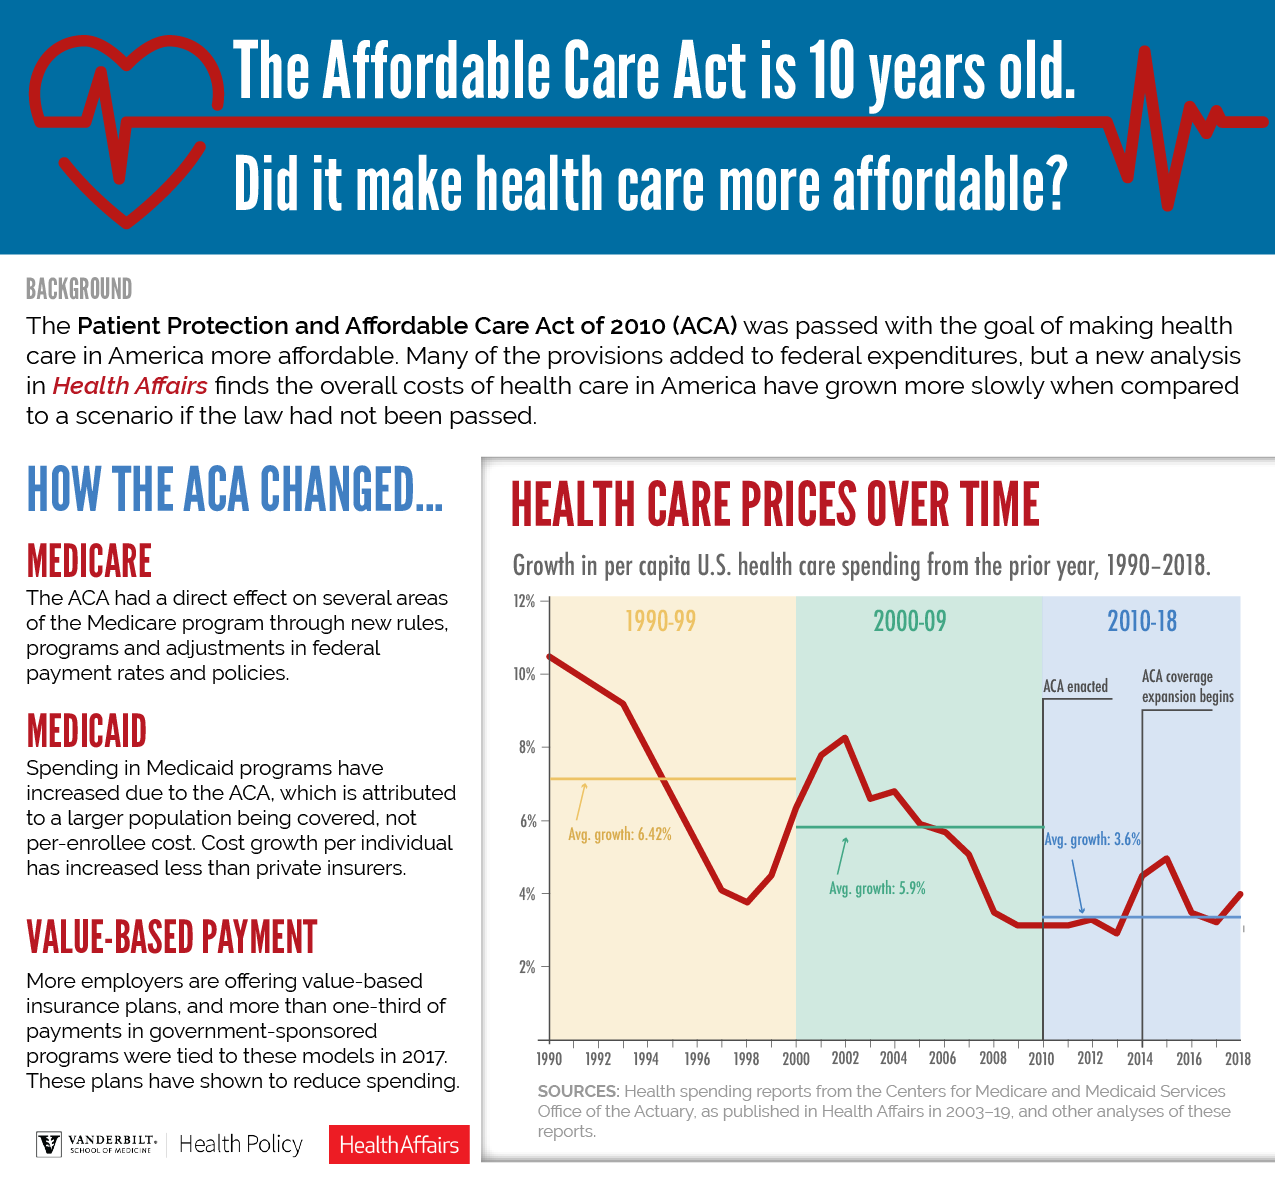 ACA/Obamacare effect on health care costs